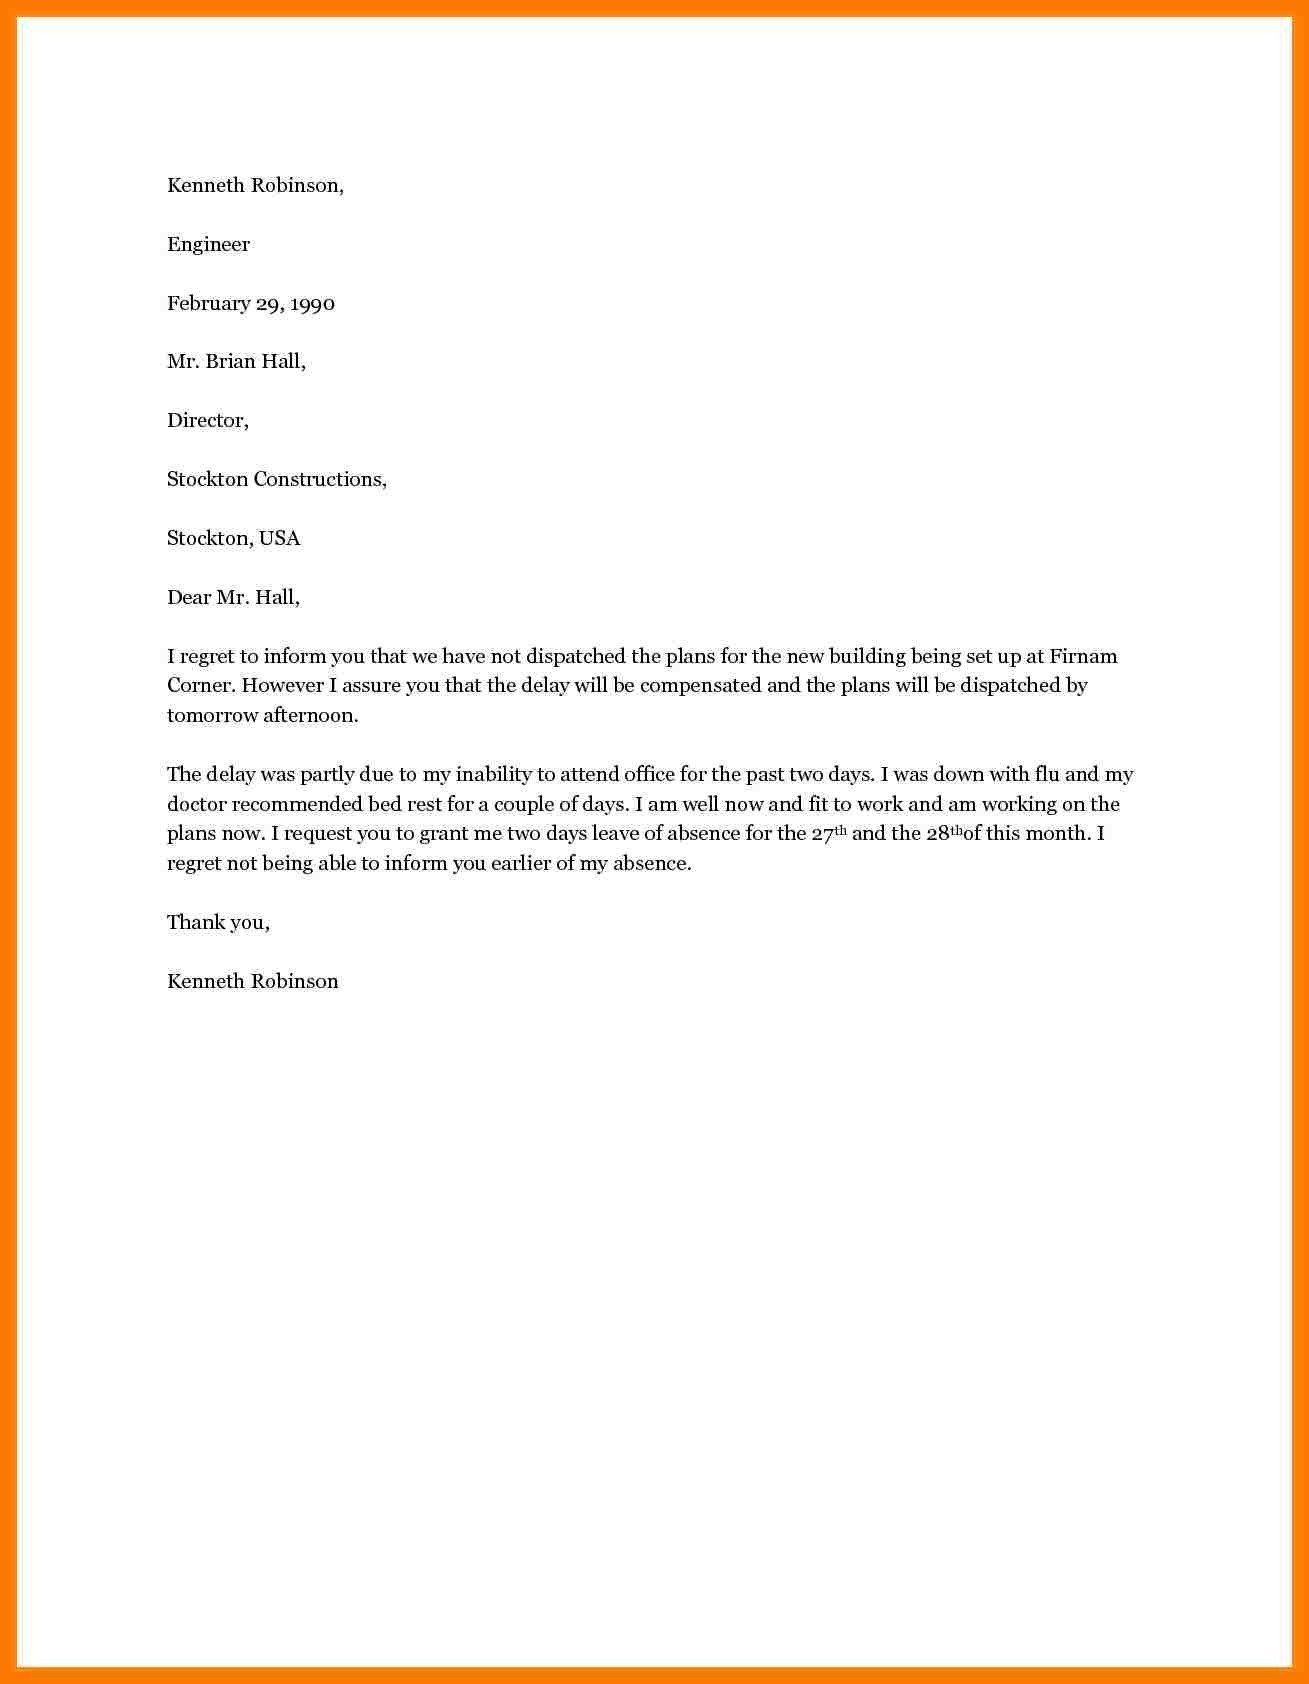 vacation leave letter dental patient dismissal letter template samples letter 25409 | letter template for leave request new vacation request letter of vacation request letter template